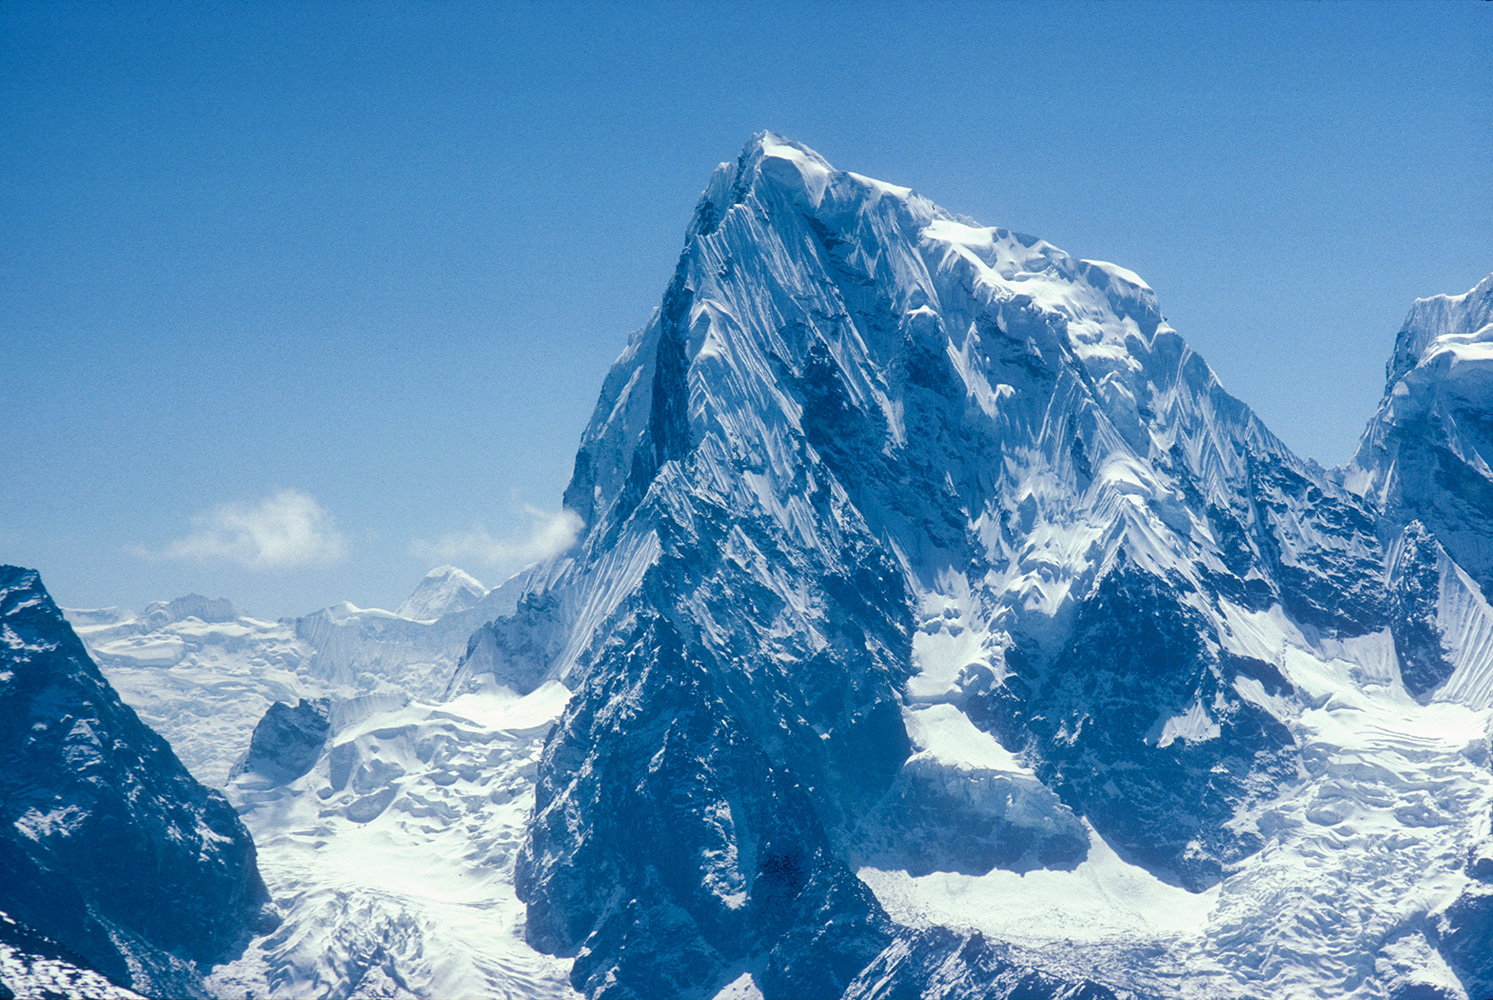 Seen from Gokyo Ri in April 1984. It was first climbed via the southwest ridge on April 22, 1982 by Vern Clevenger, Galen Rowell, John Roskelley, Bill O'Connor and Peter Hackett.Canon A1, 135mm, Kodachrome